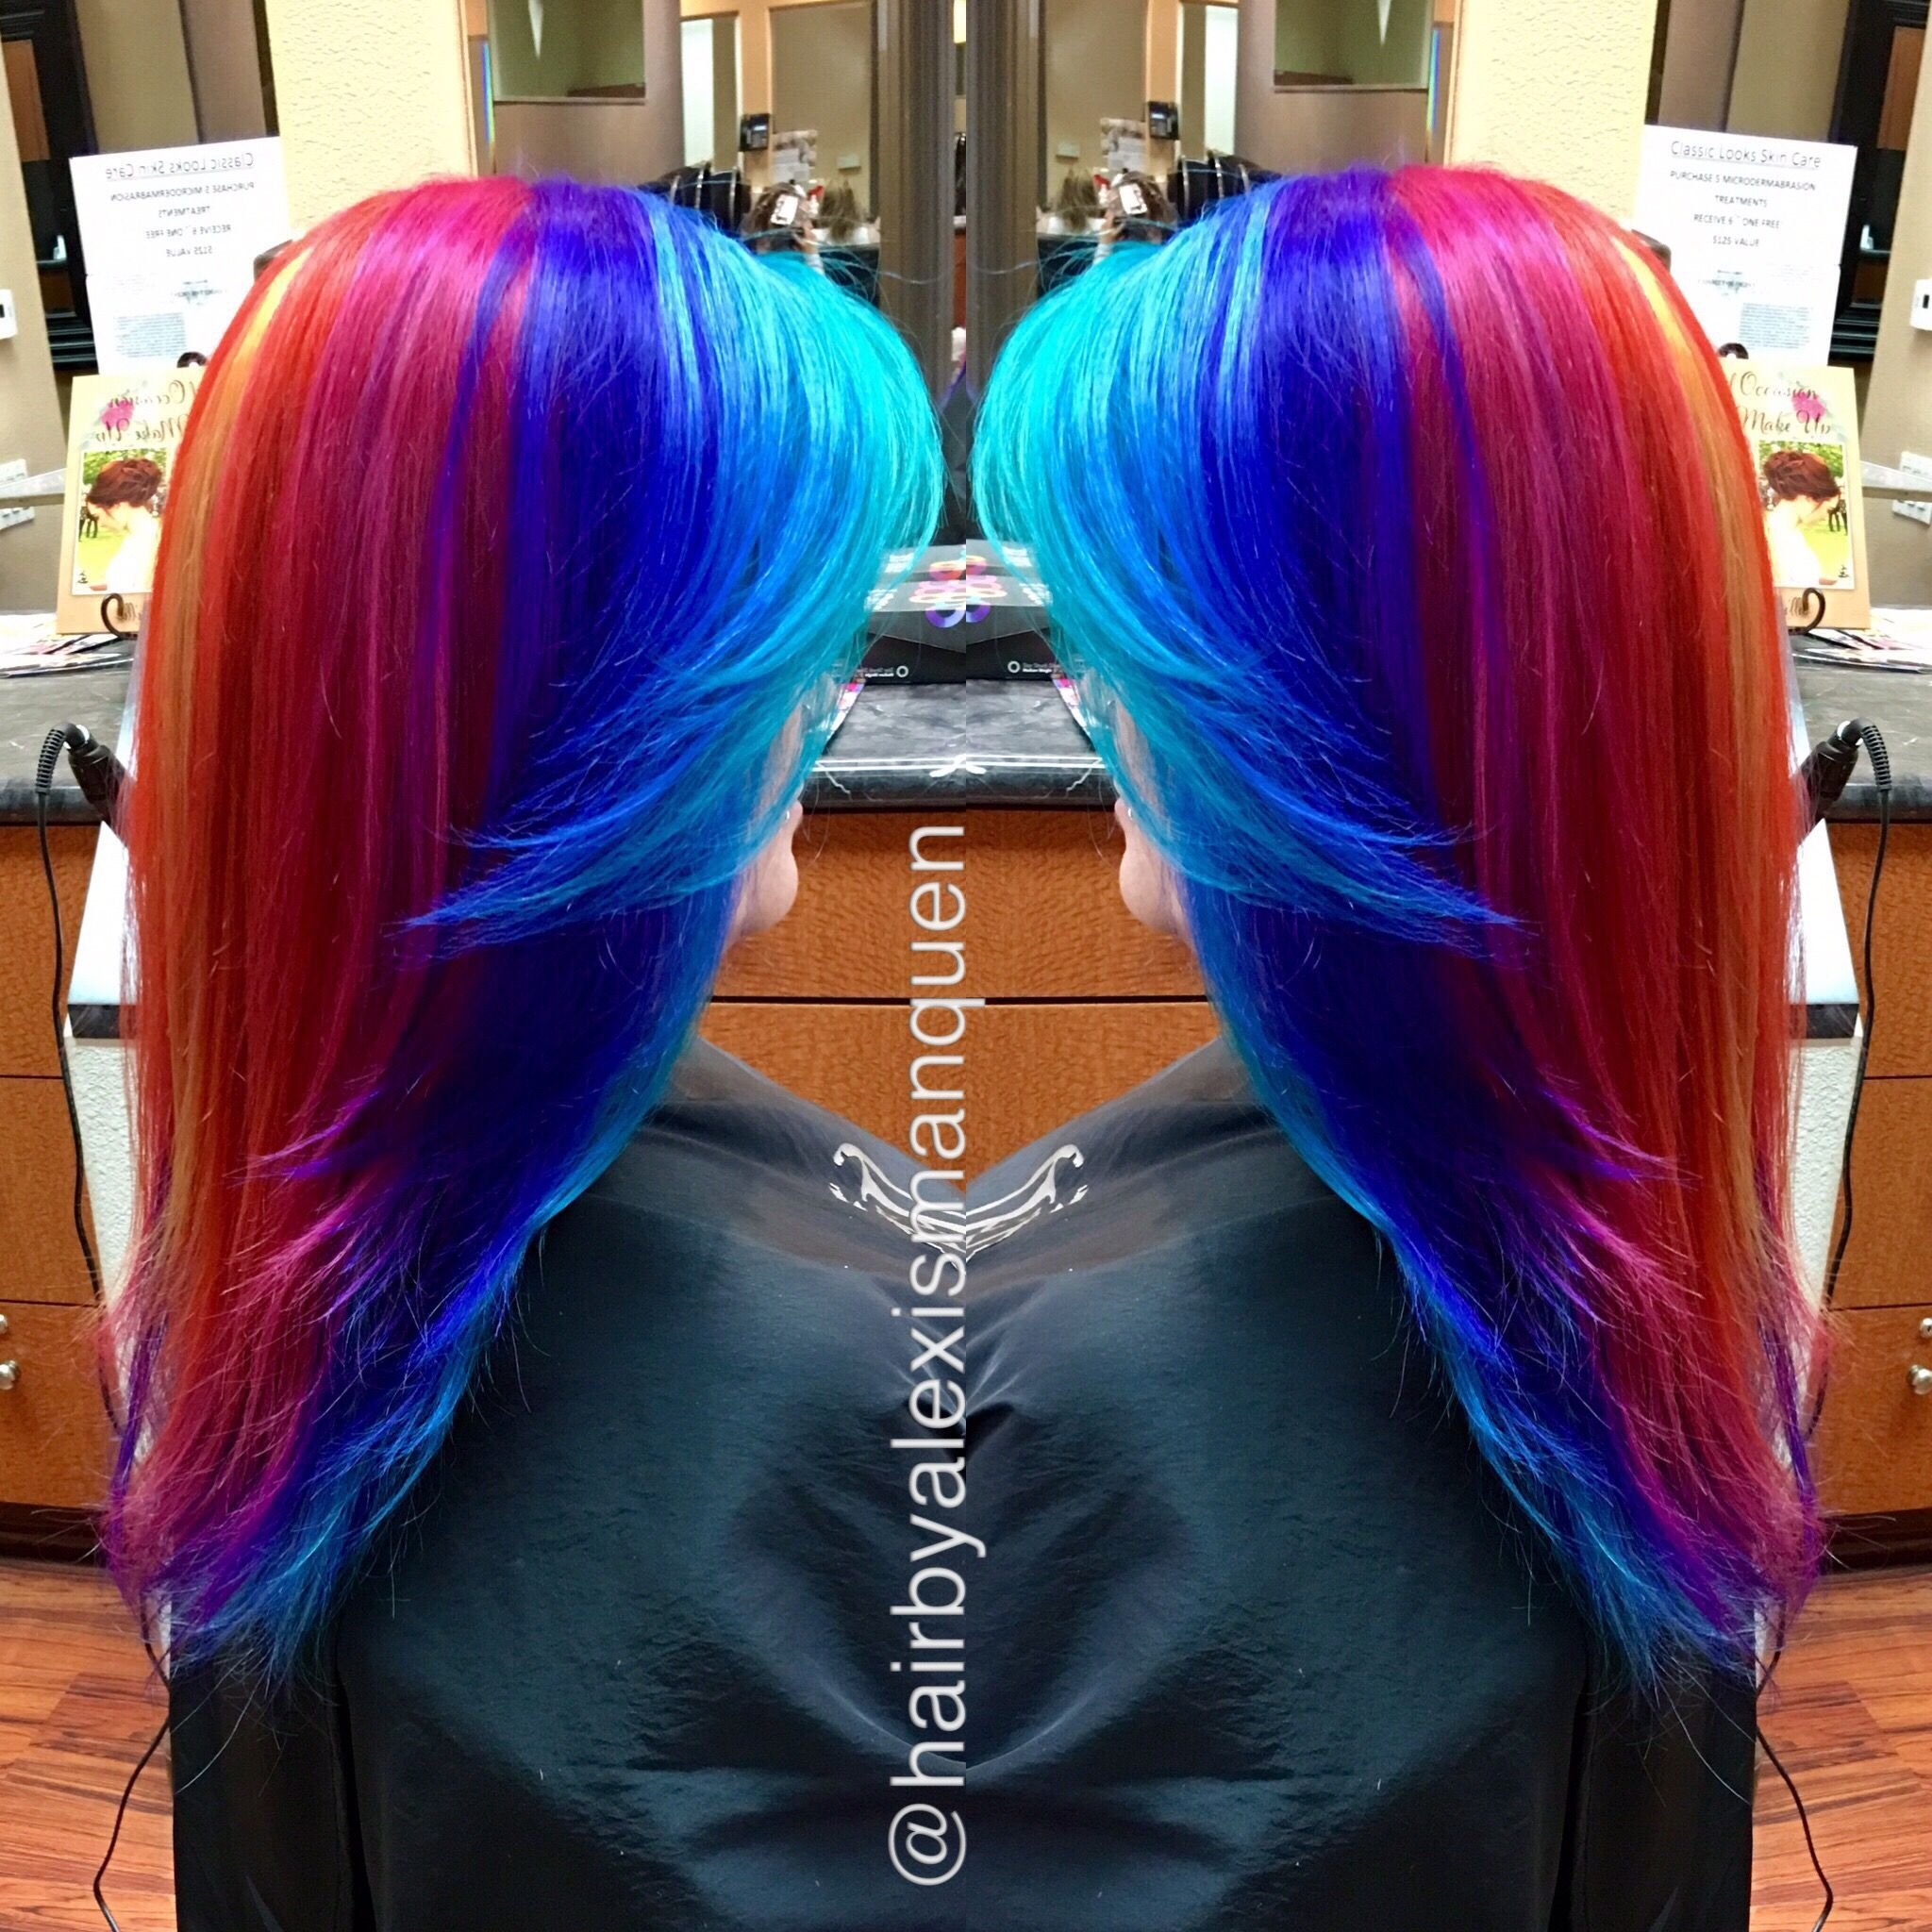 Rainbow hair using kenra lightener and pravana vivids with olaplex